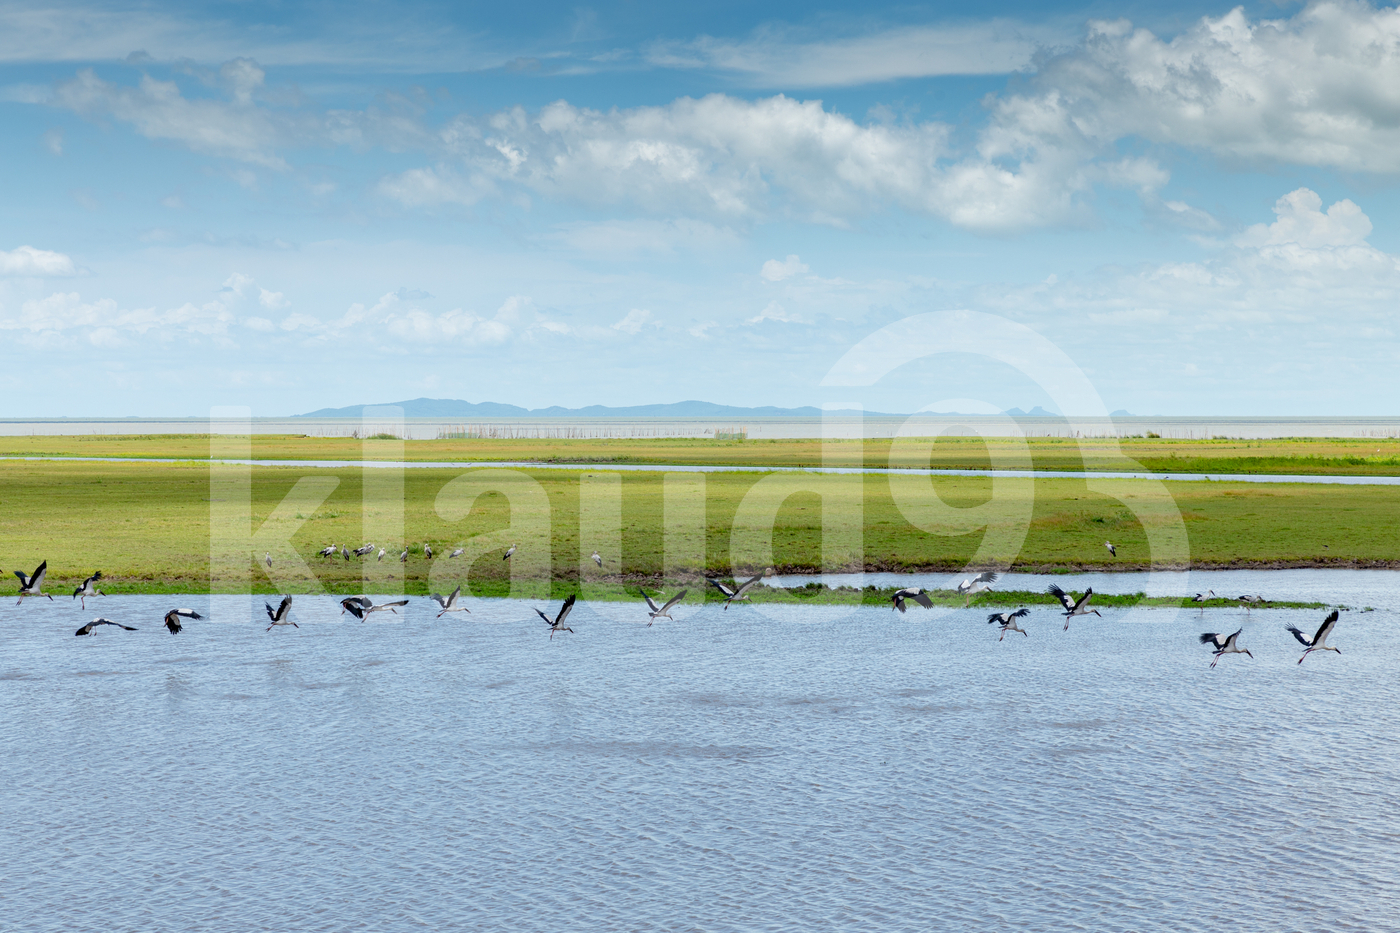 Birds at flying above the water